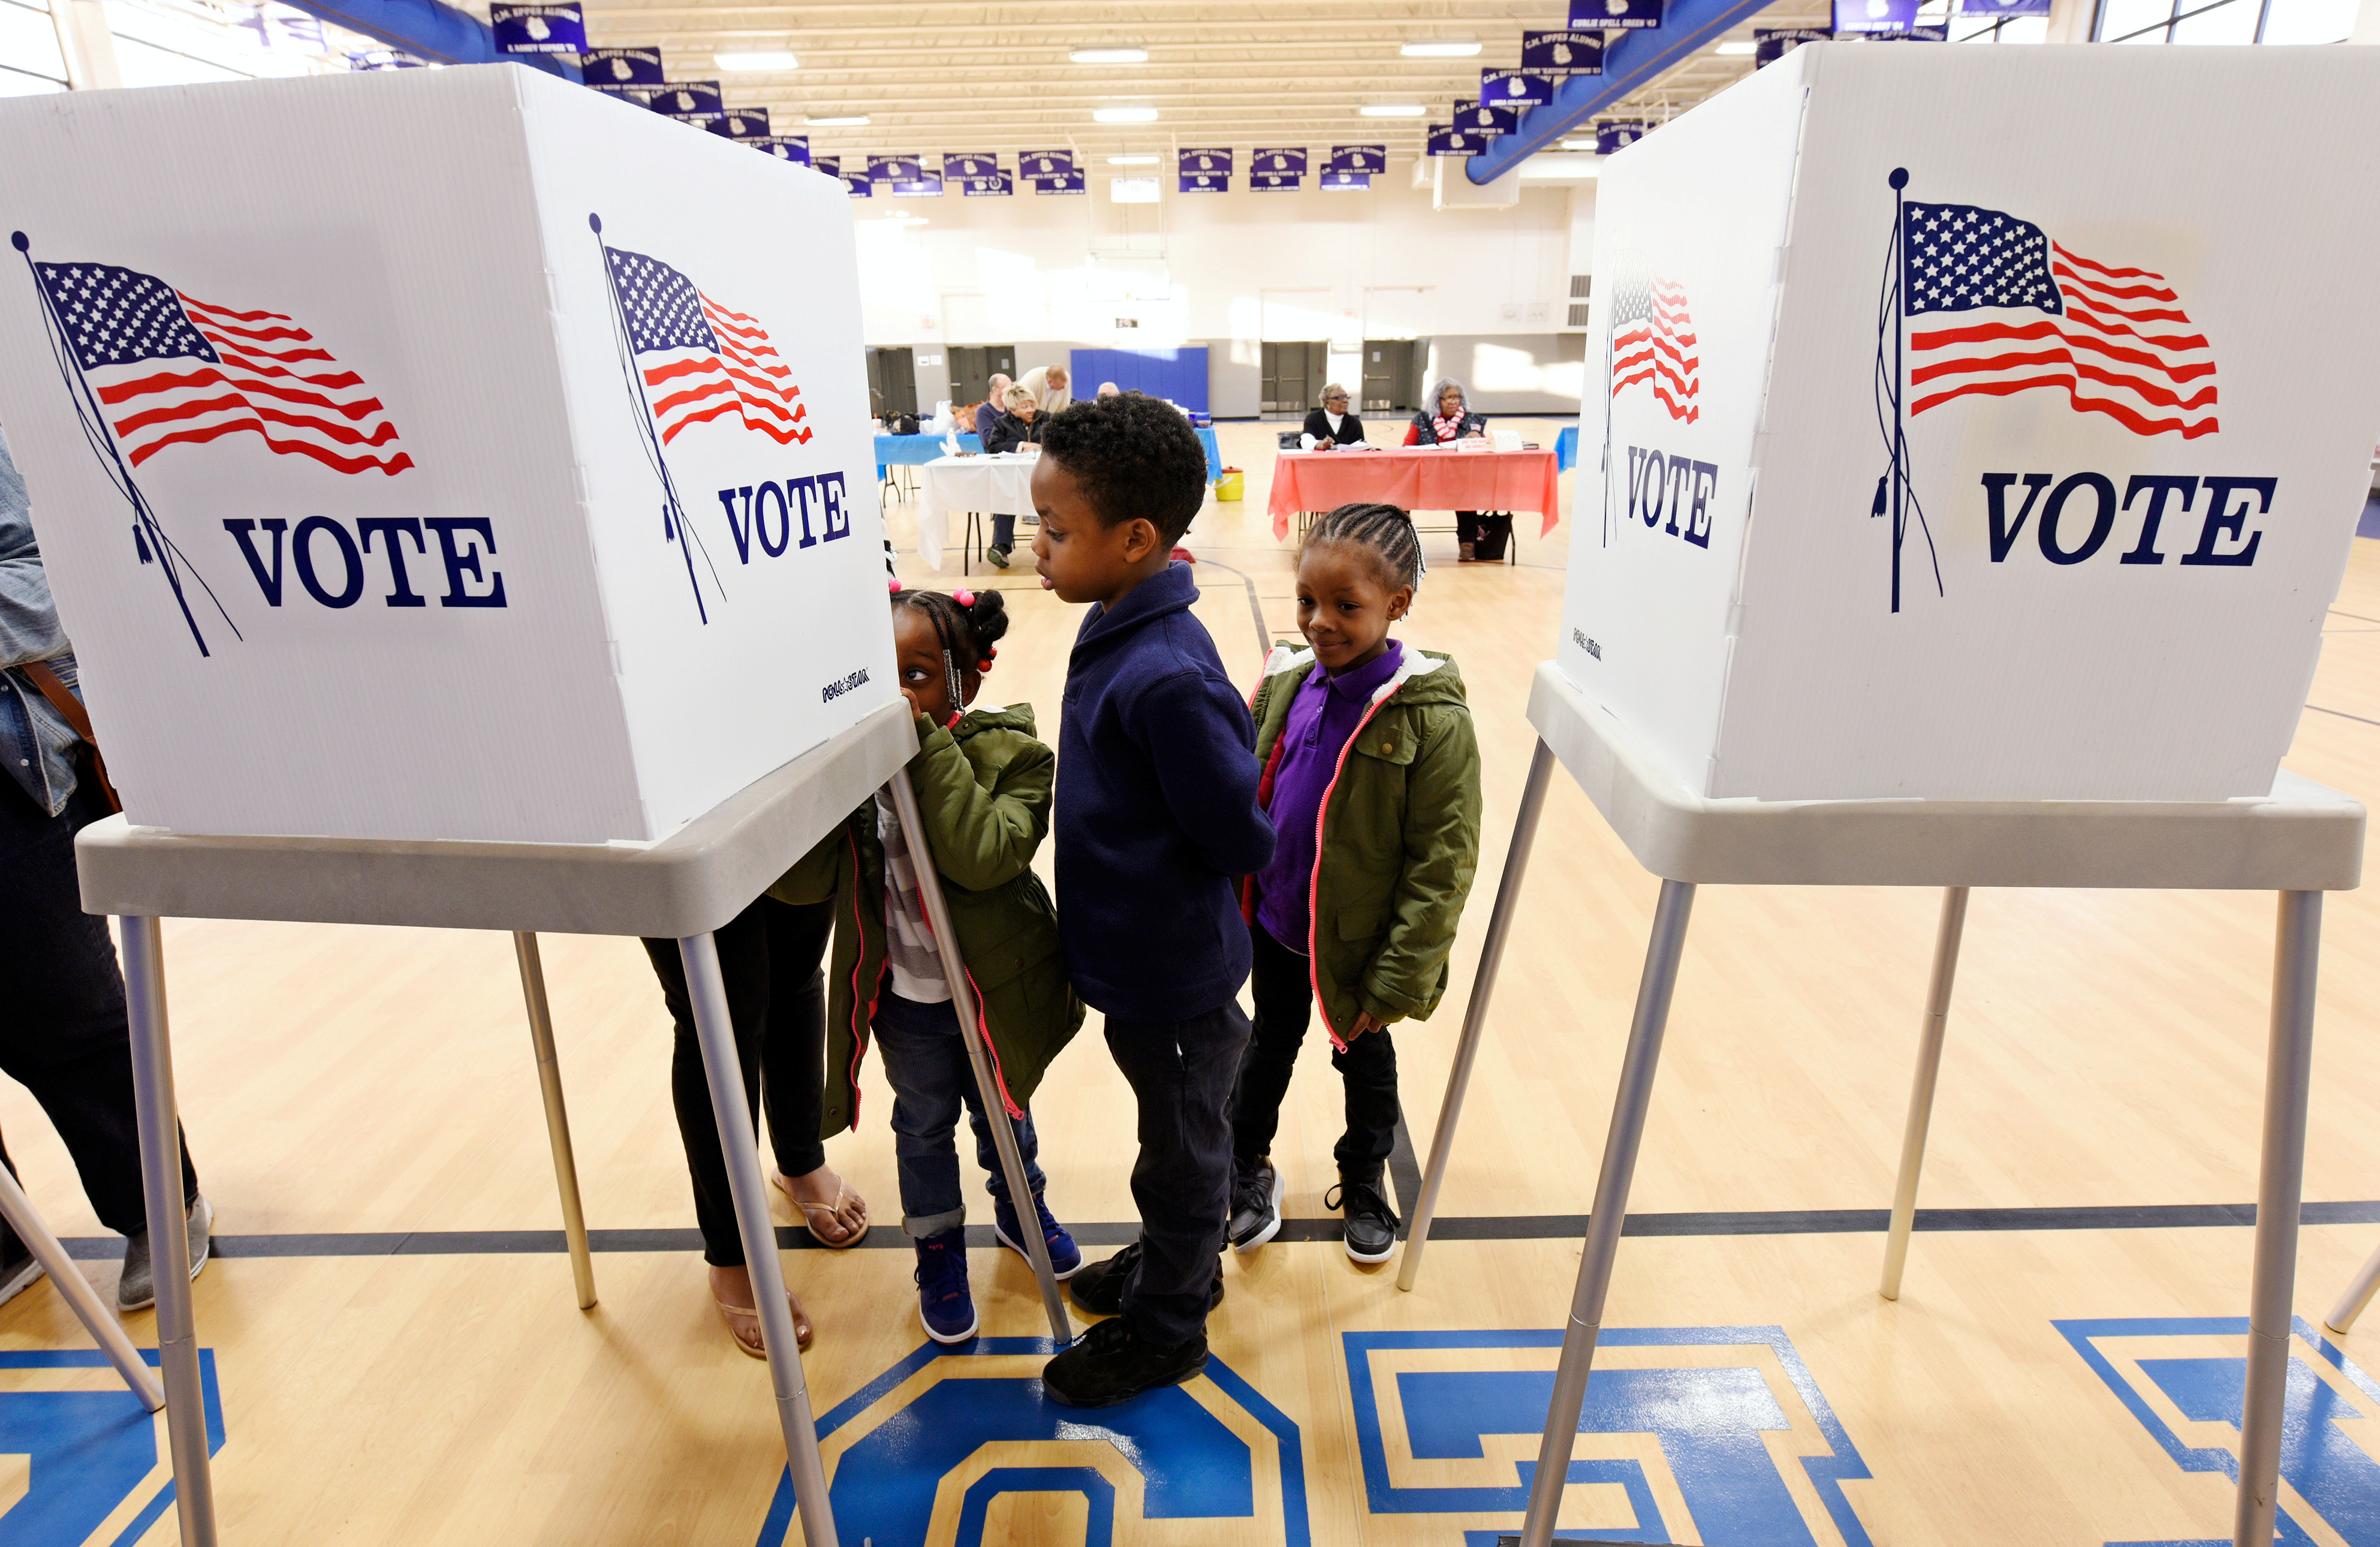 Children watch their mother vote during the U.S. general election in Greenville, North Carolina, U.S. on November 8, 2016.  REUTERS/Jonathan Drake